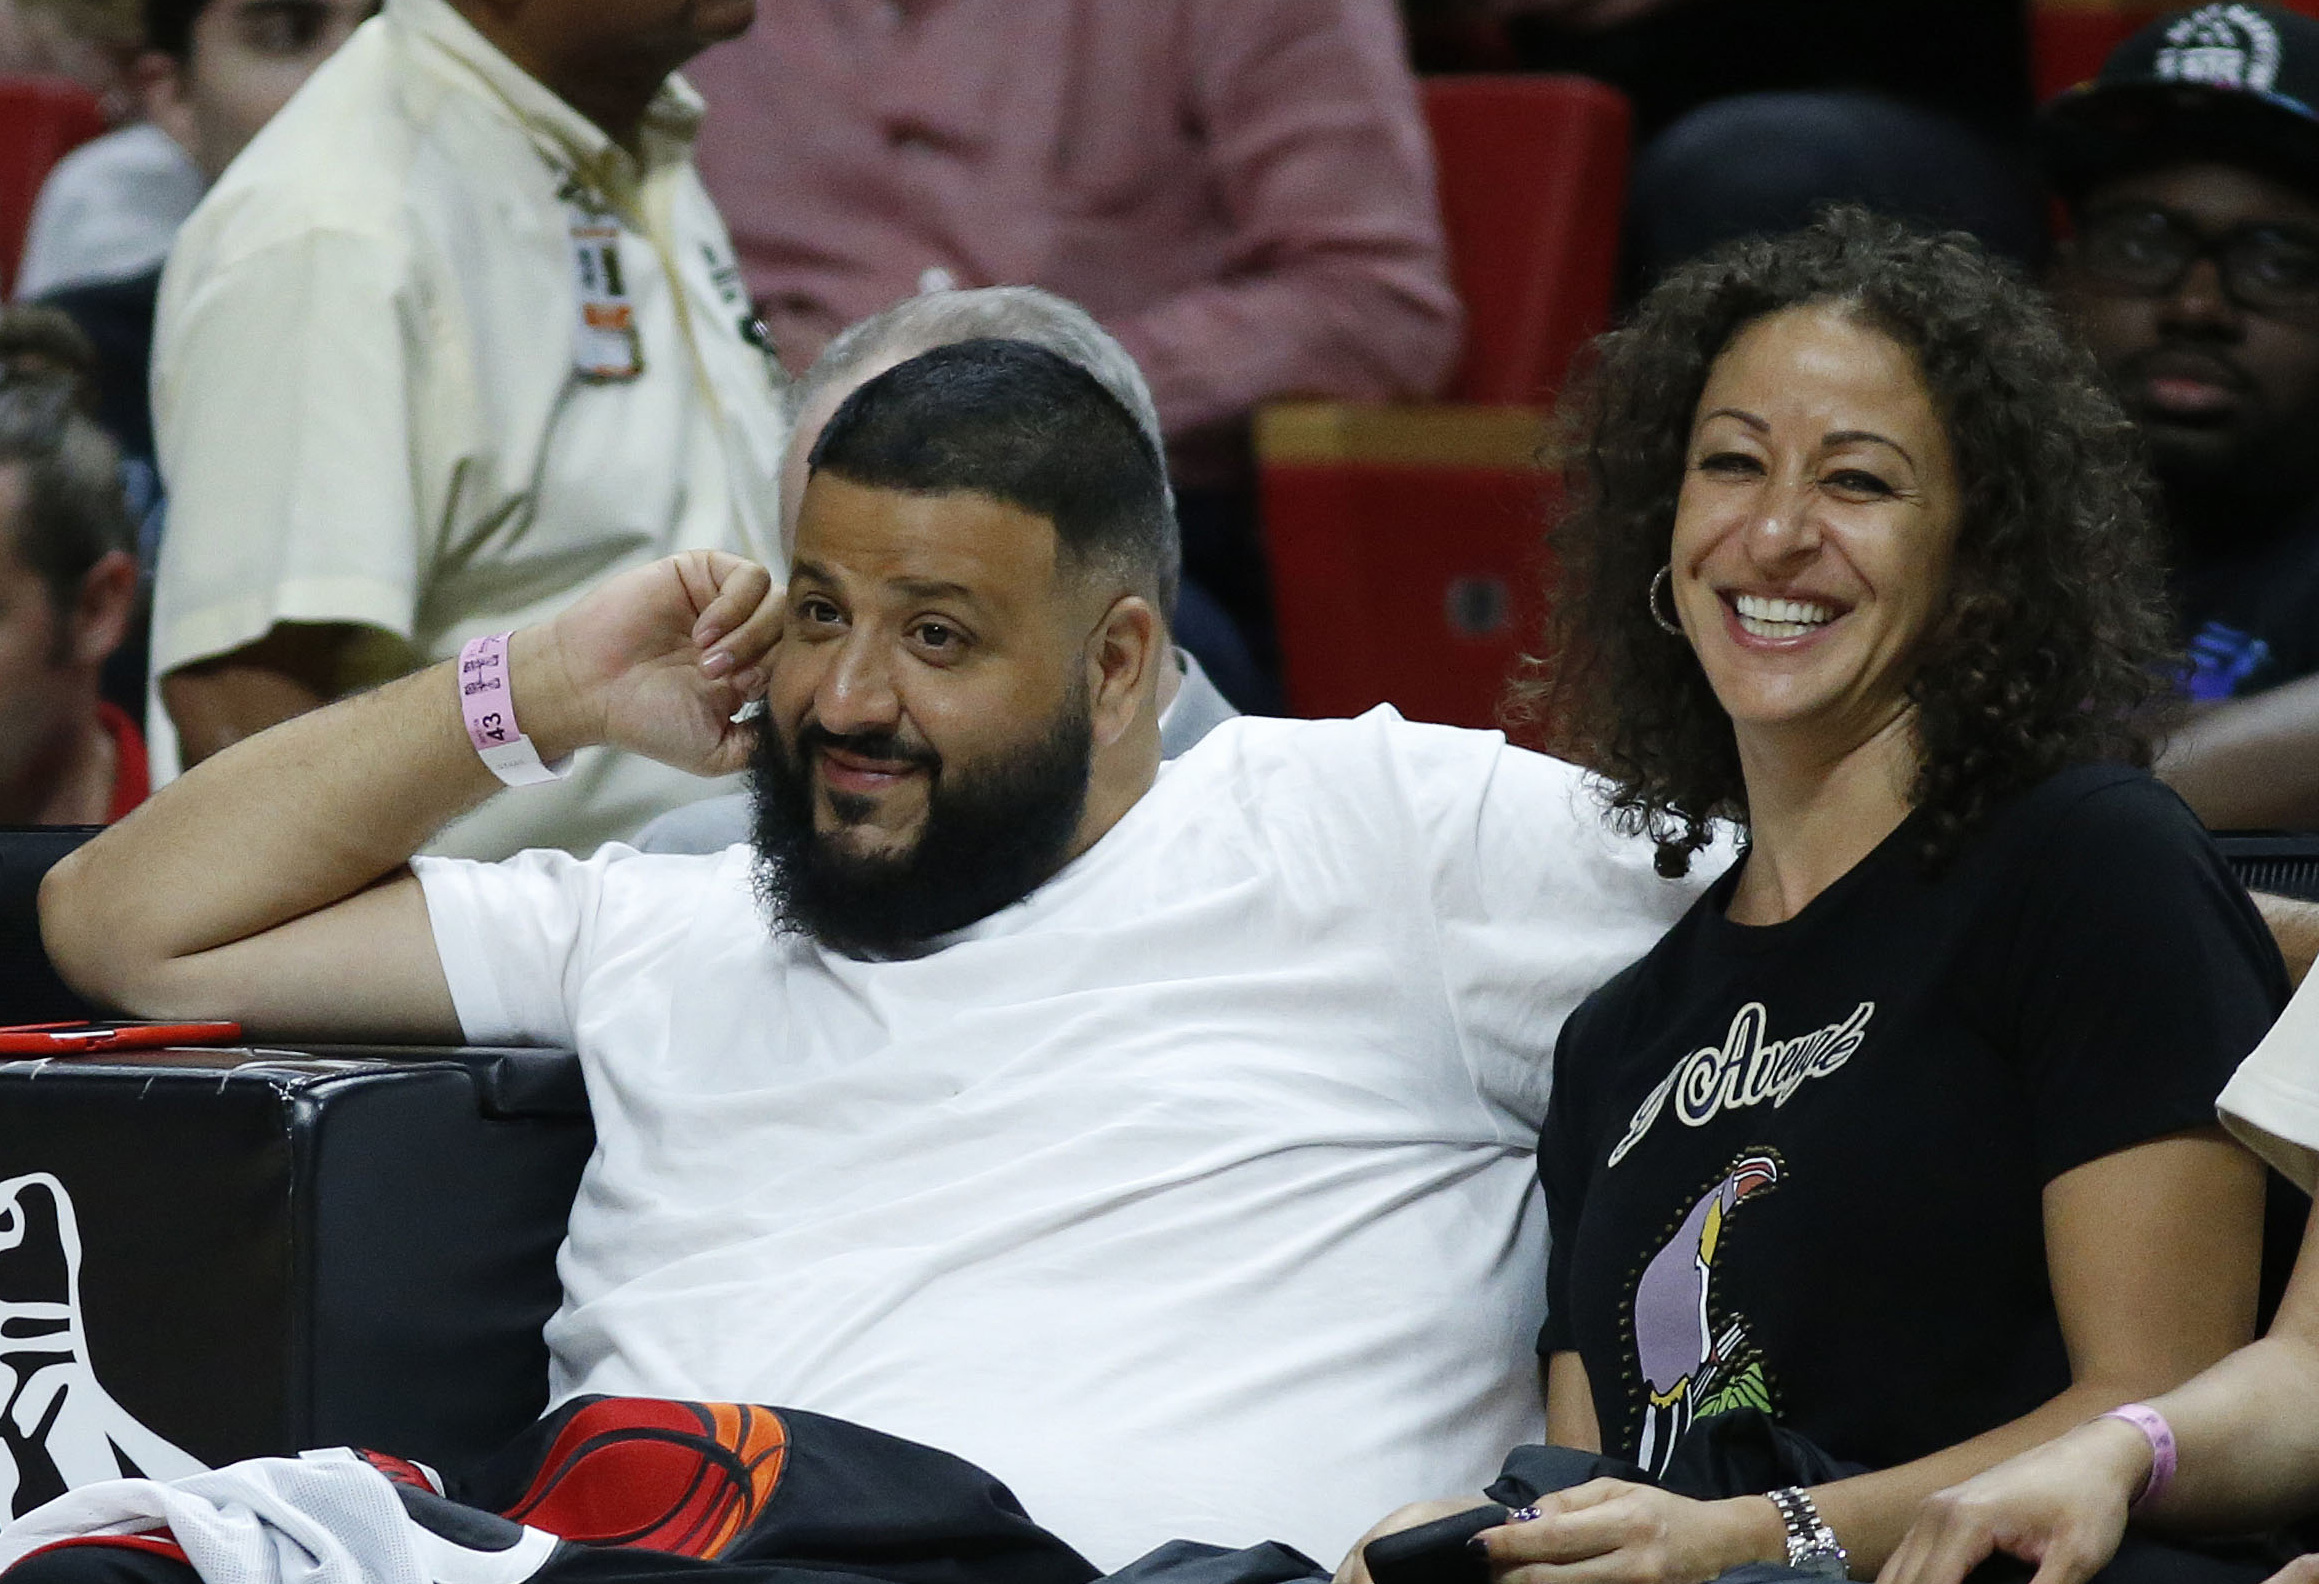 DJ KHALED Refuses To Give Oral So Twitter Attacks